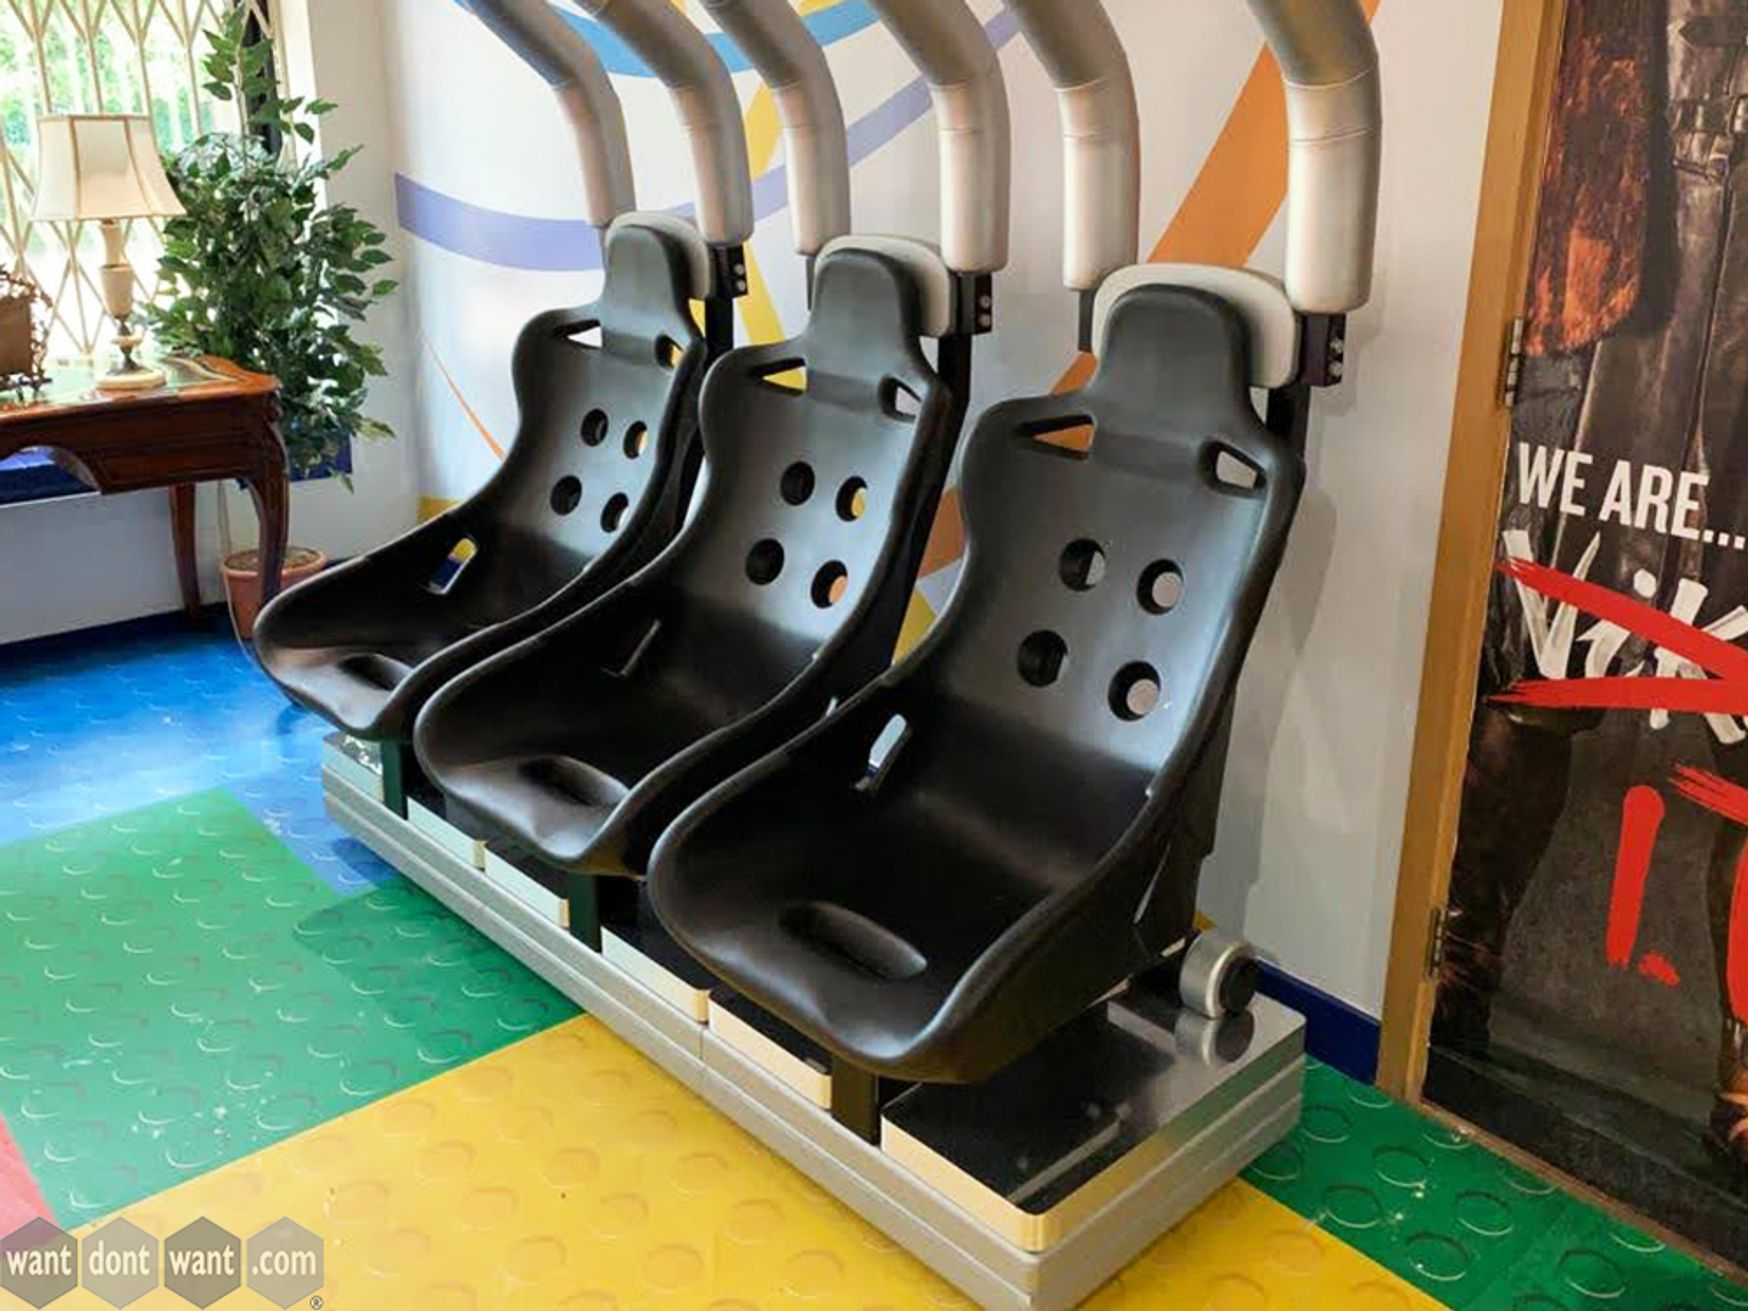 Used Rollercoaster Style Reception Seating From Chessington